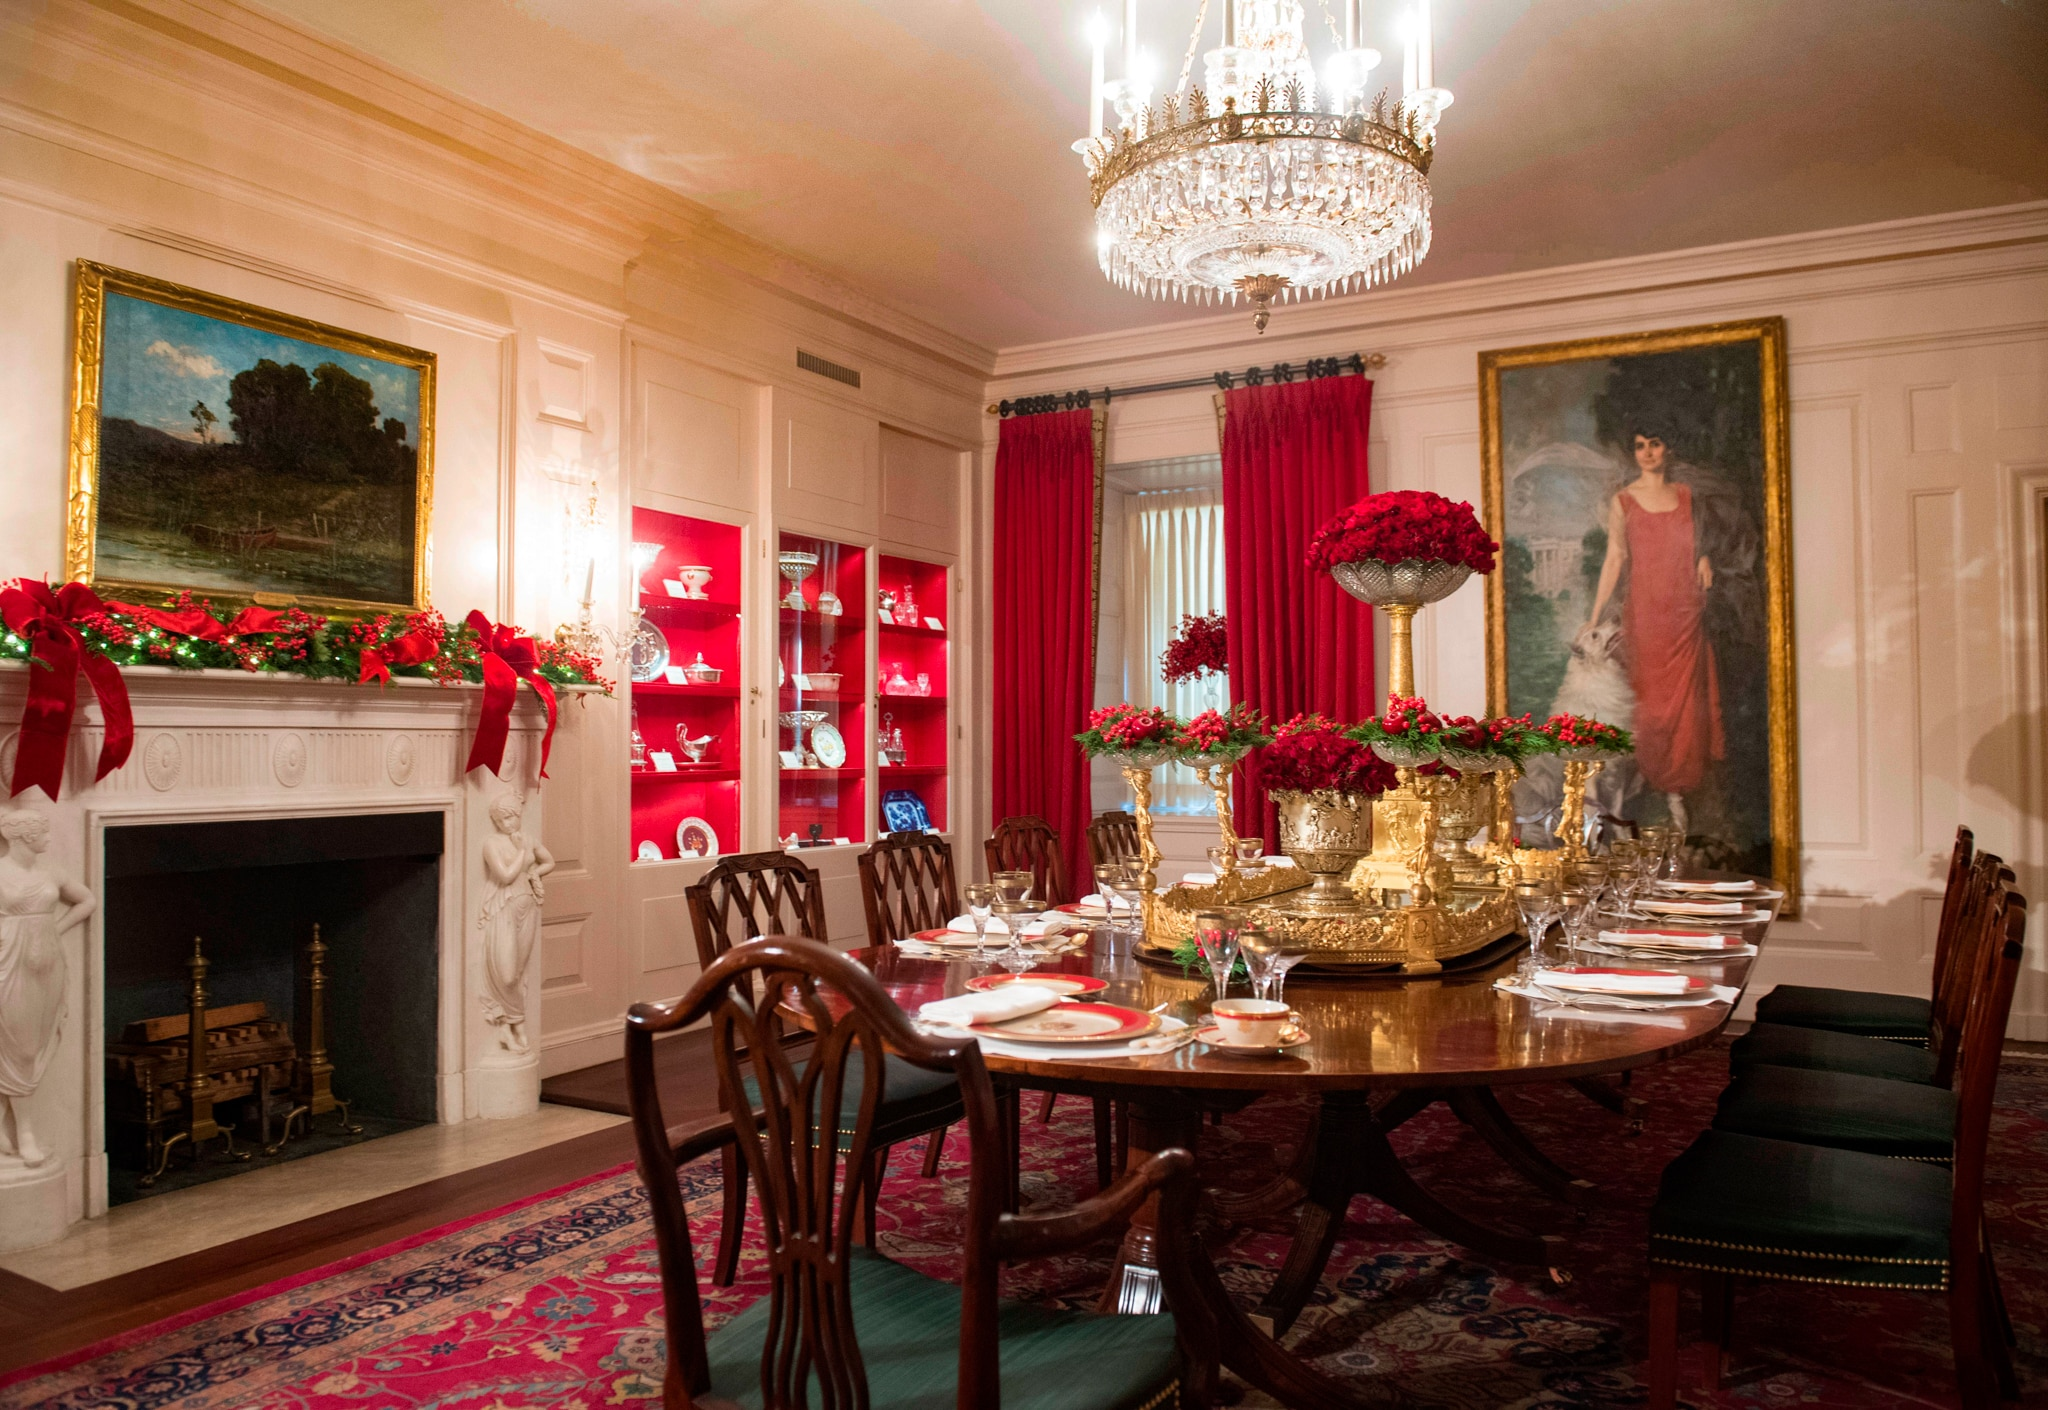 Dining room with red decorations (© Saul Loeb/AFP/Getty Images)